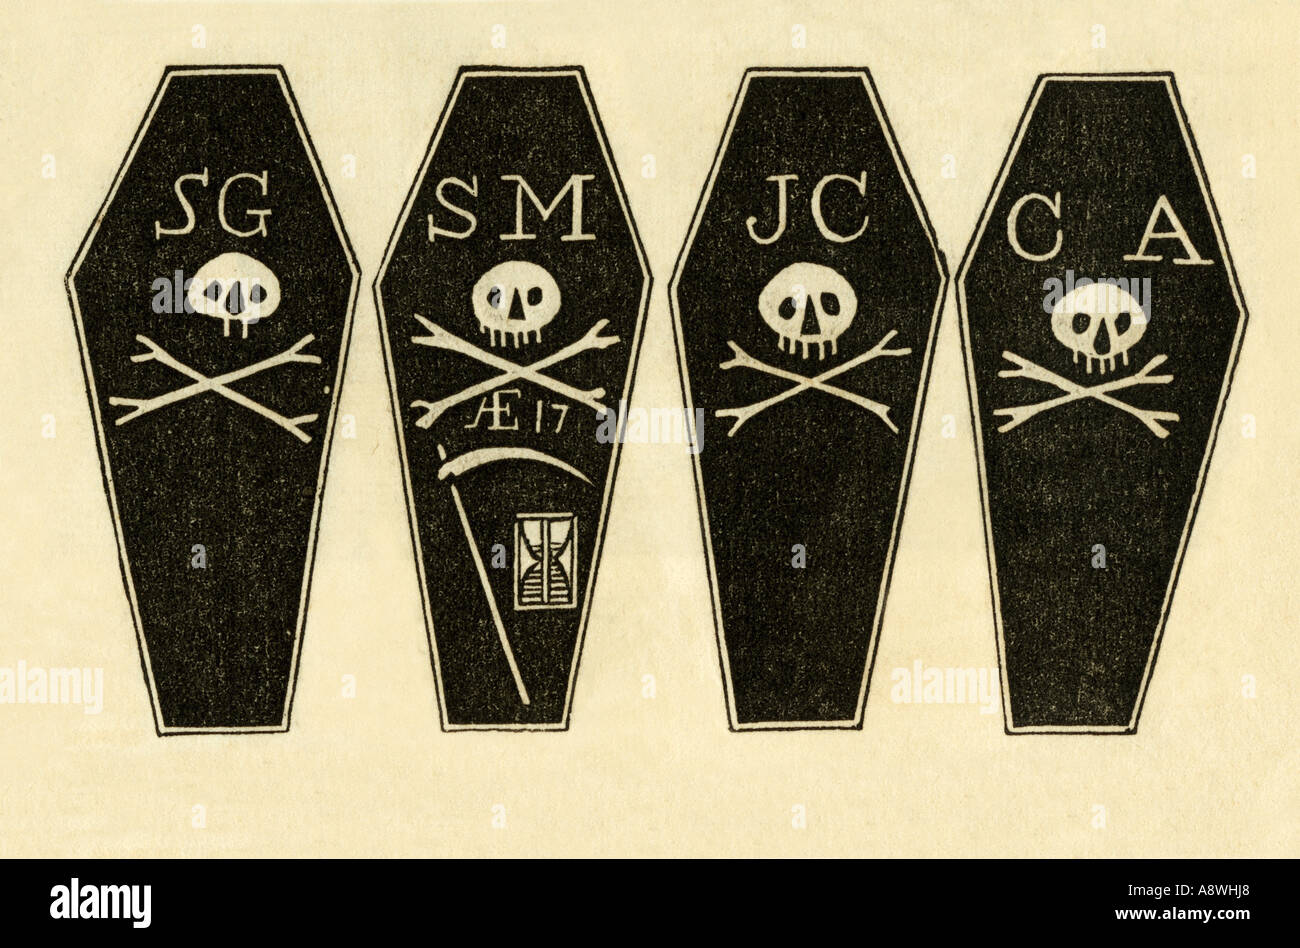 Illustration protesting the Boston Massacre showing coffins with the initials of the four victims 1777. Woodcut with a watercolor wash - Stock Image